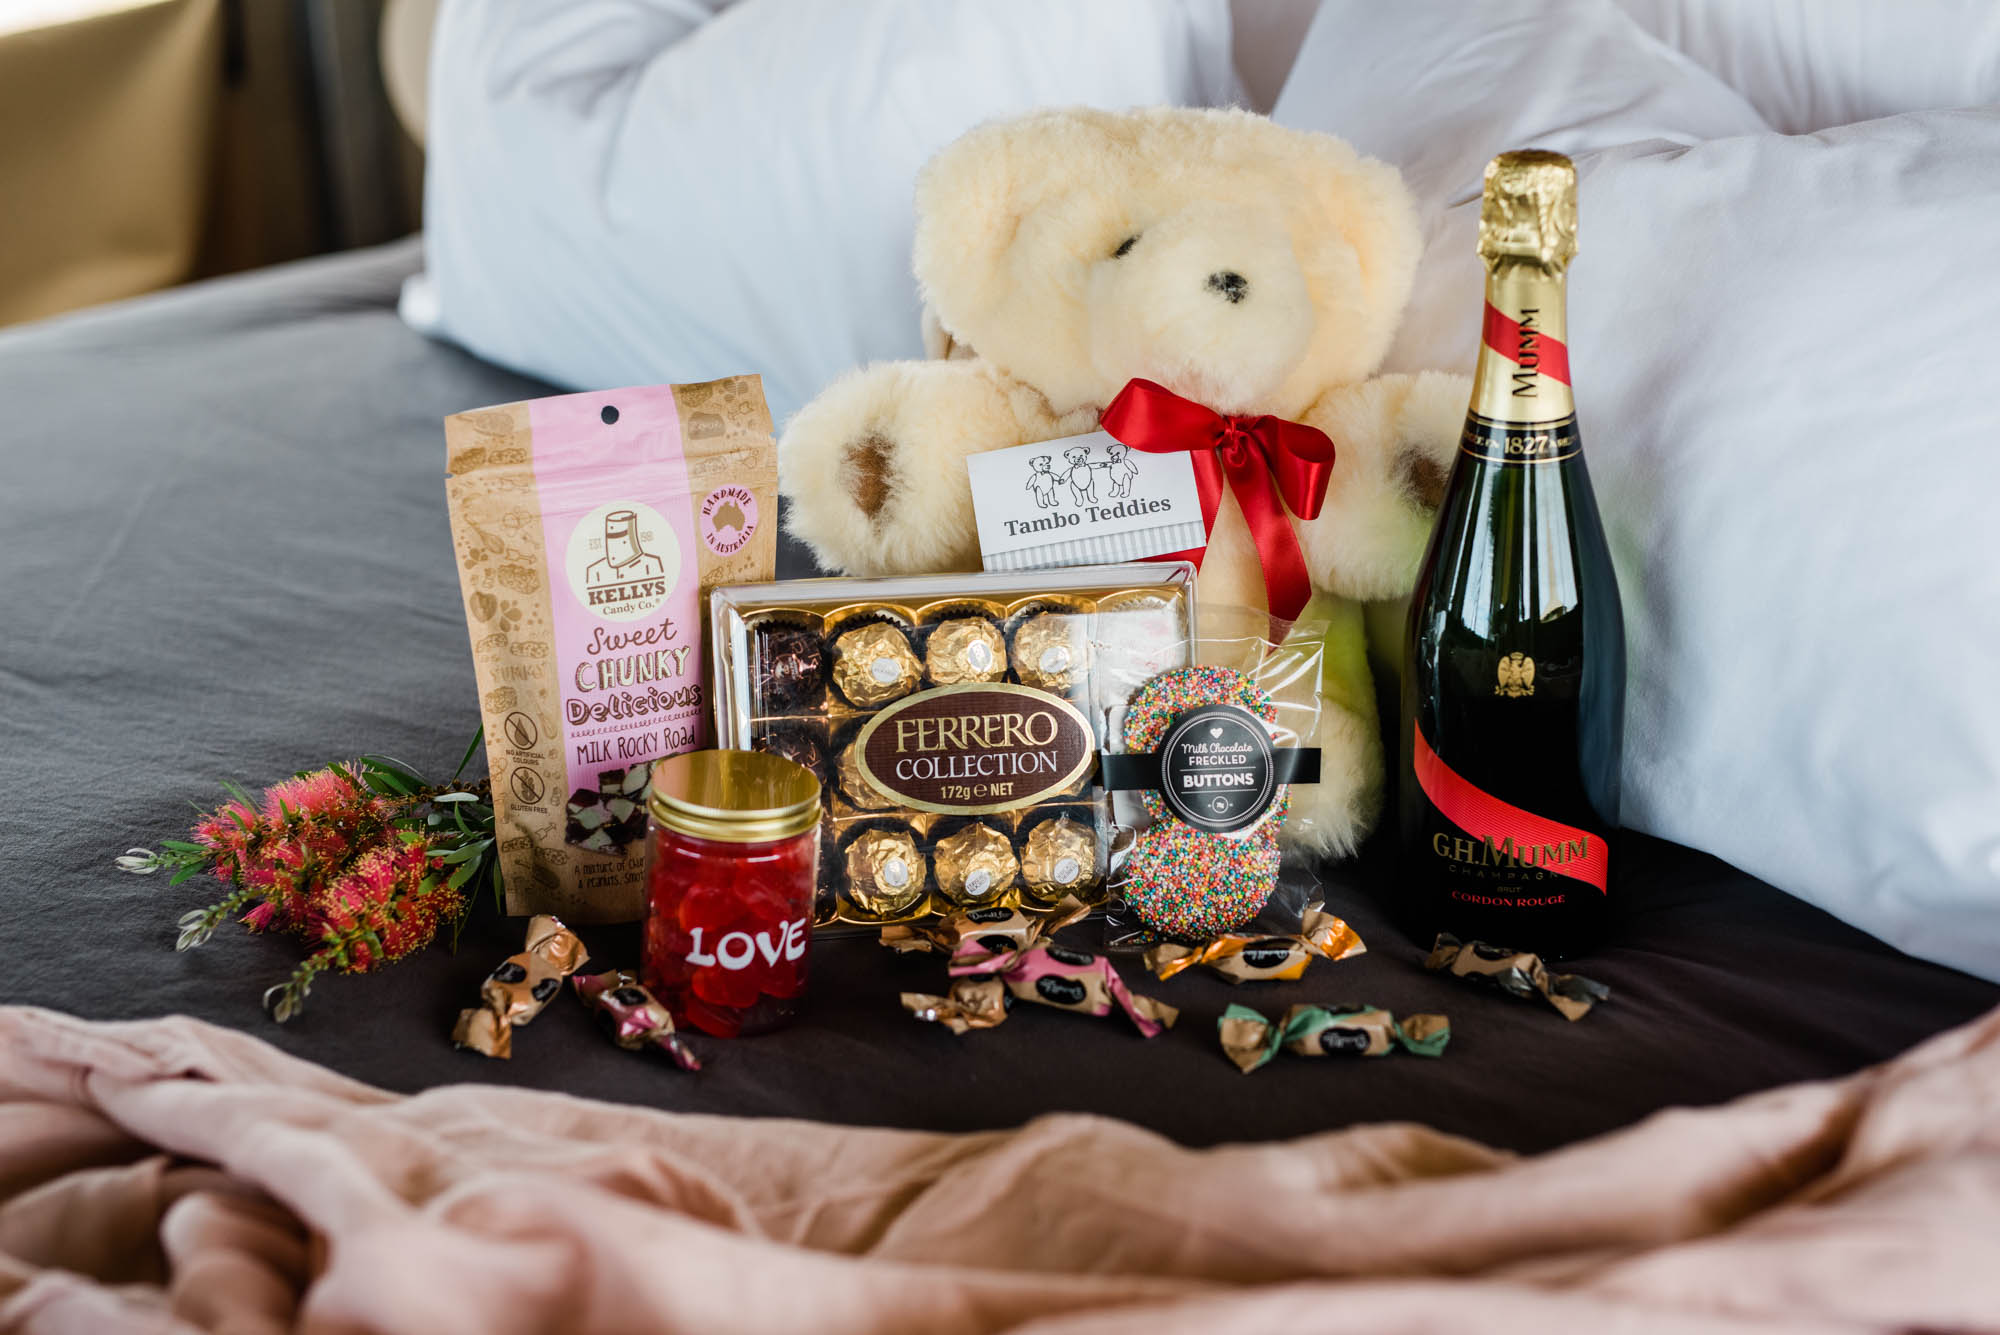 Romance package with teddy, champaign and chocolates